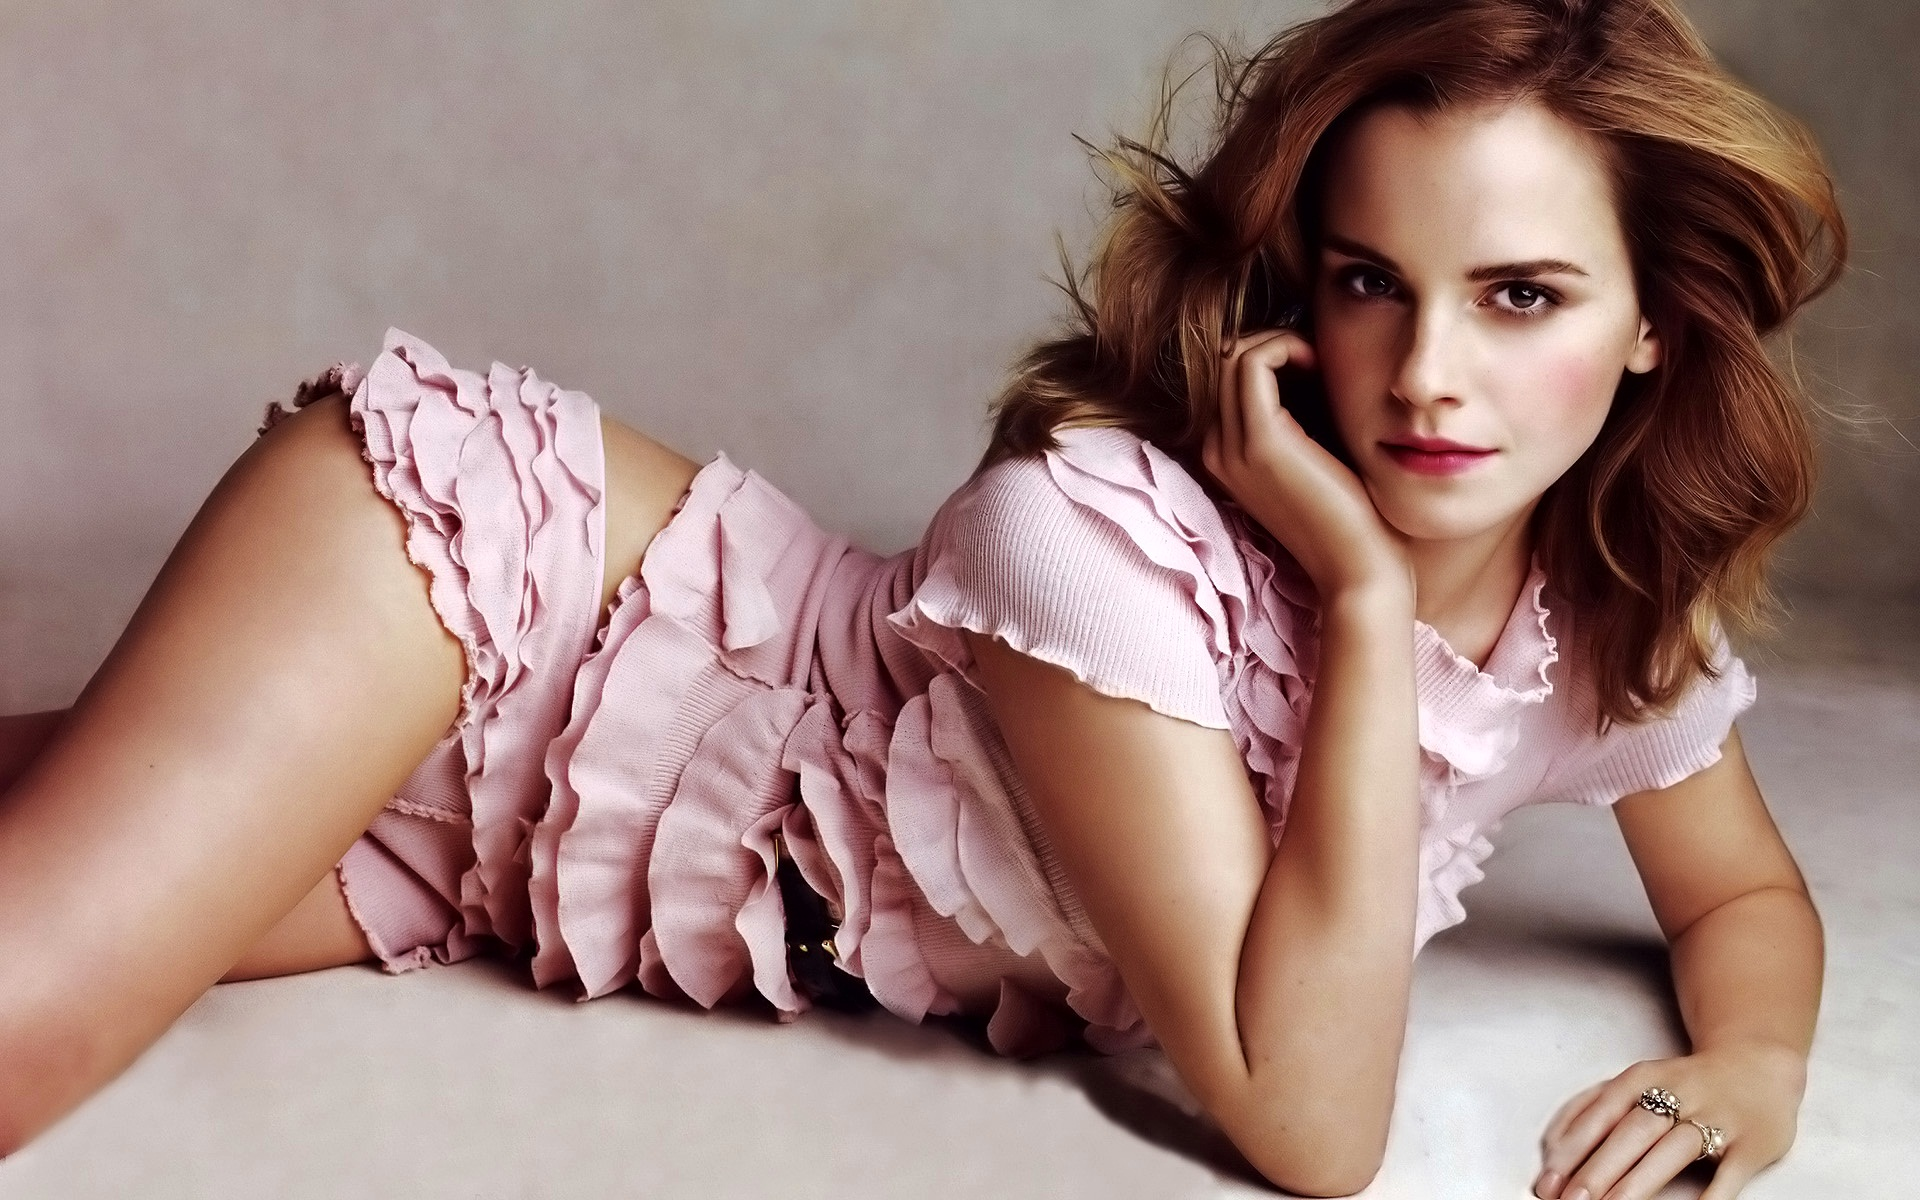 emma watson bikii 10 Hot Emma Watson Wallpapers